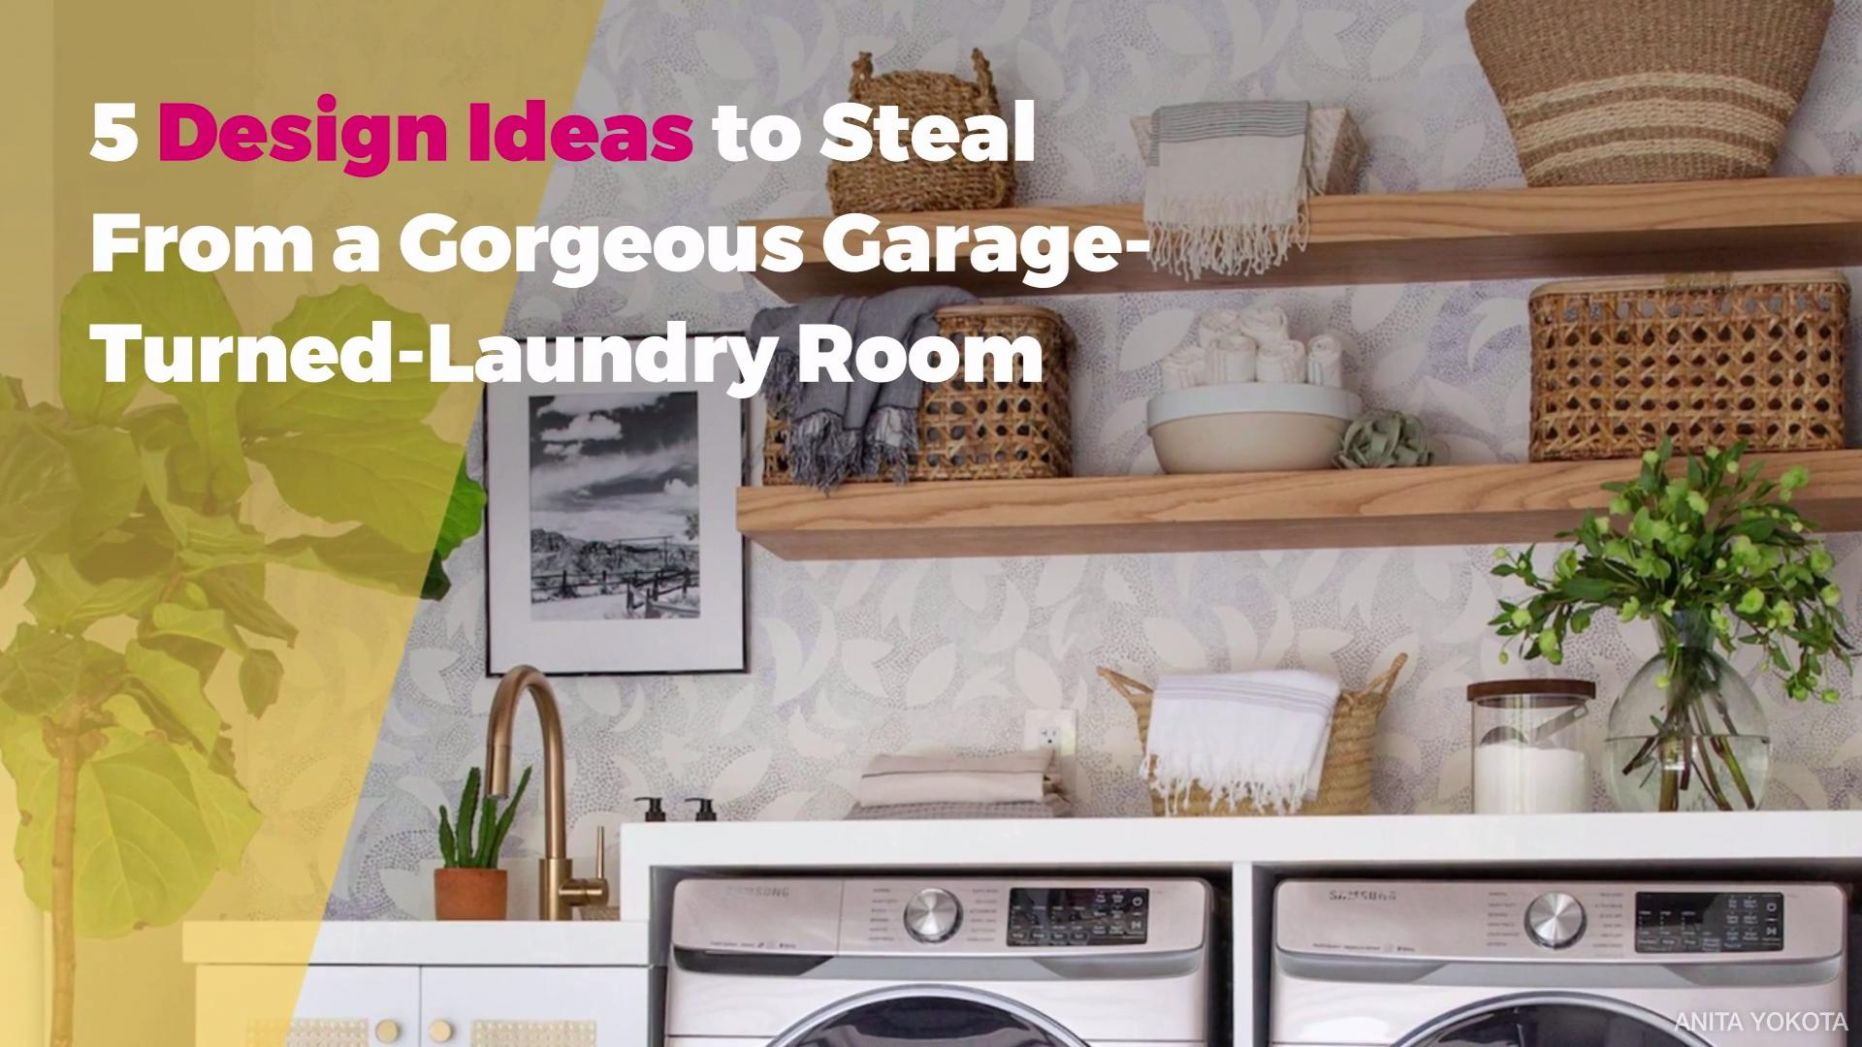 8 Design Ideas to Steal From a Gorgeous Garage-Turned-Laundry Room